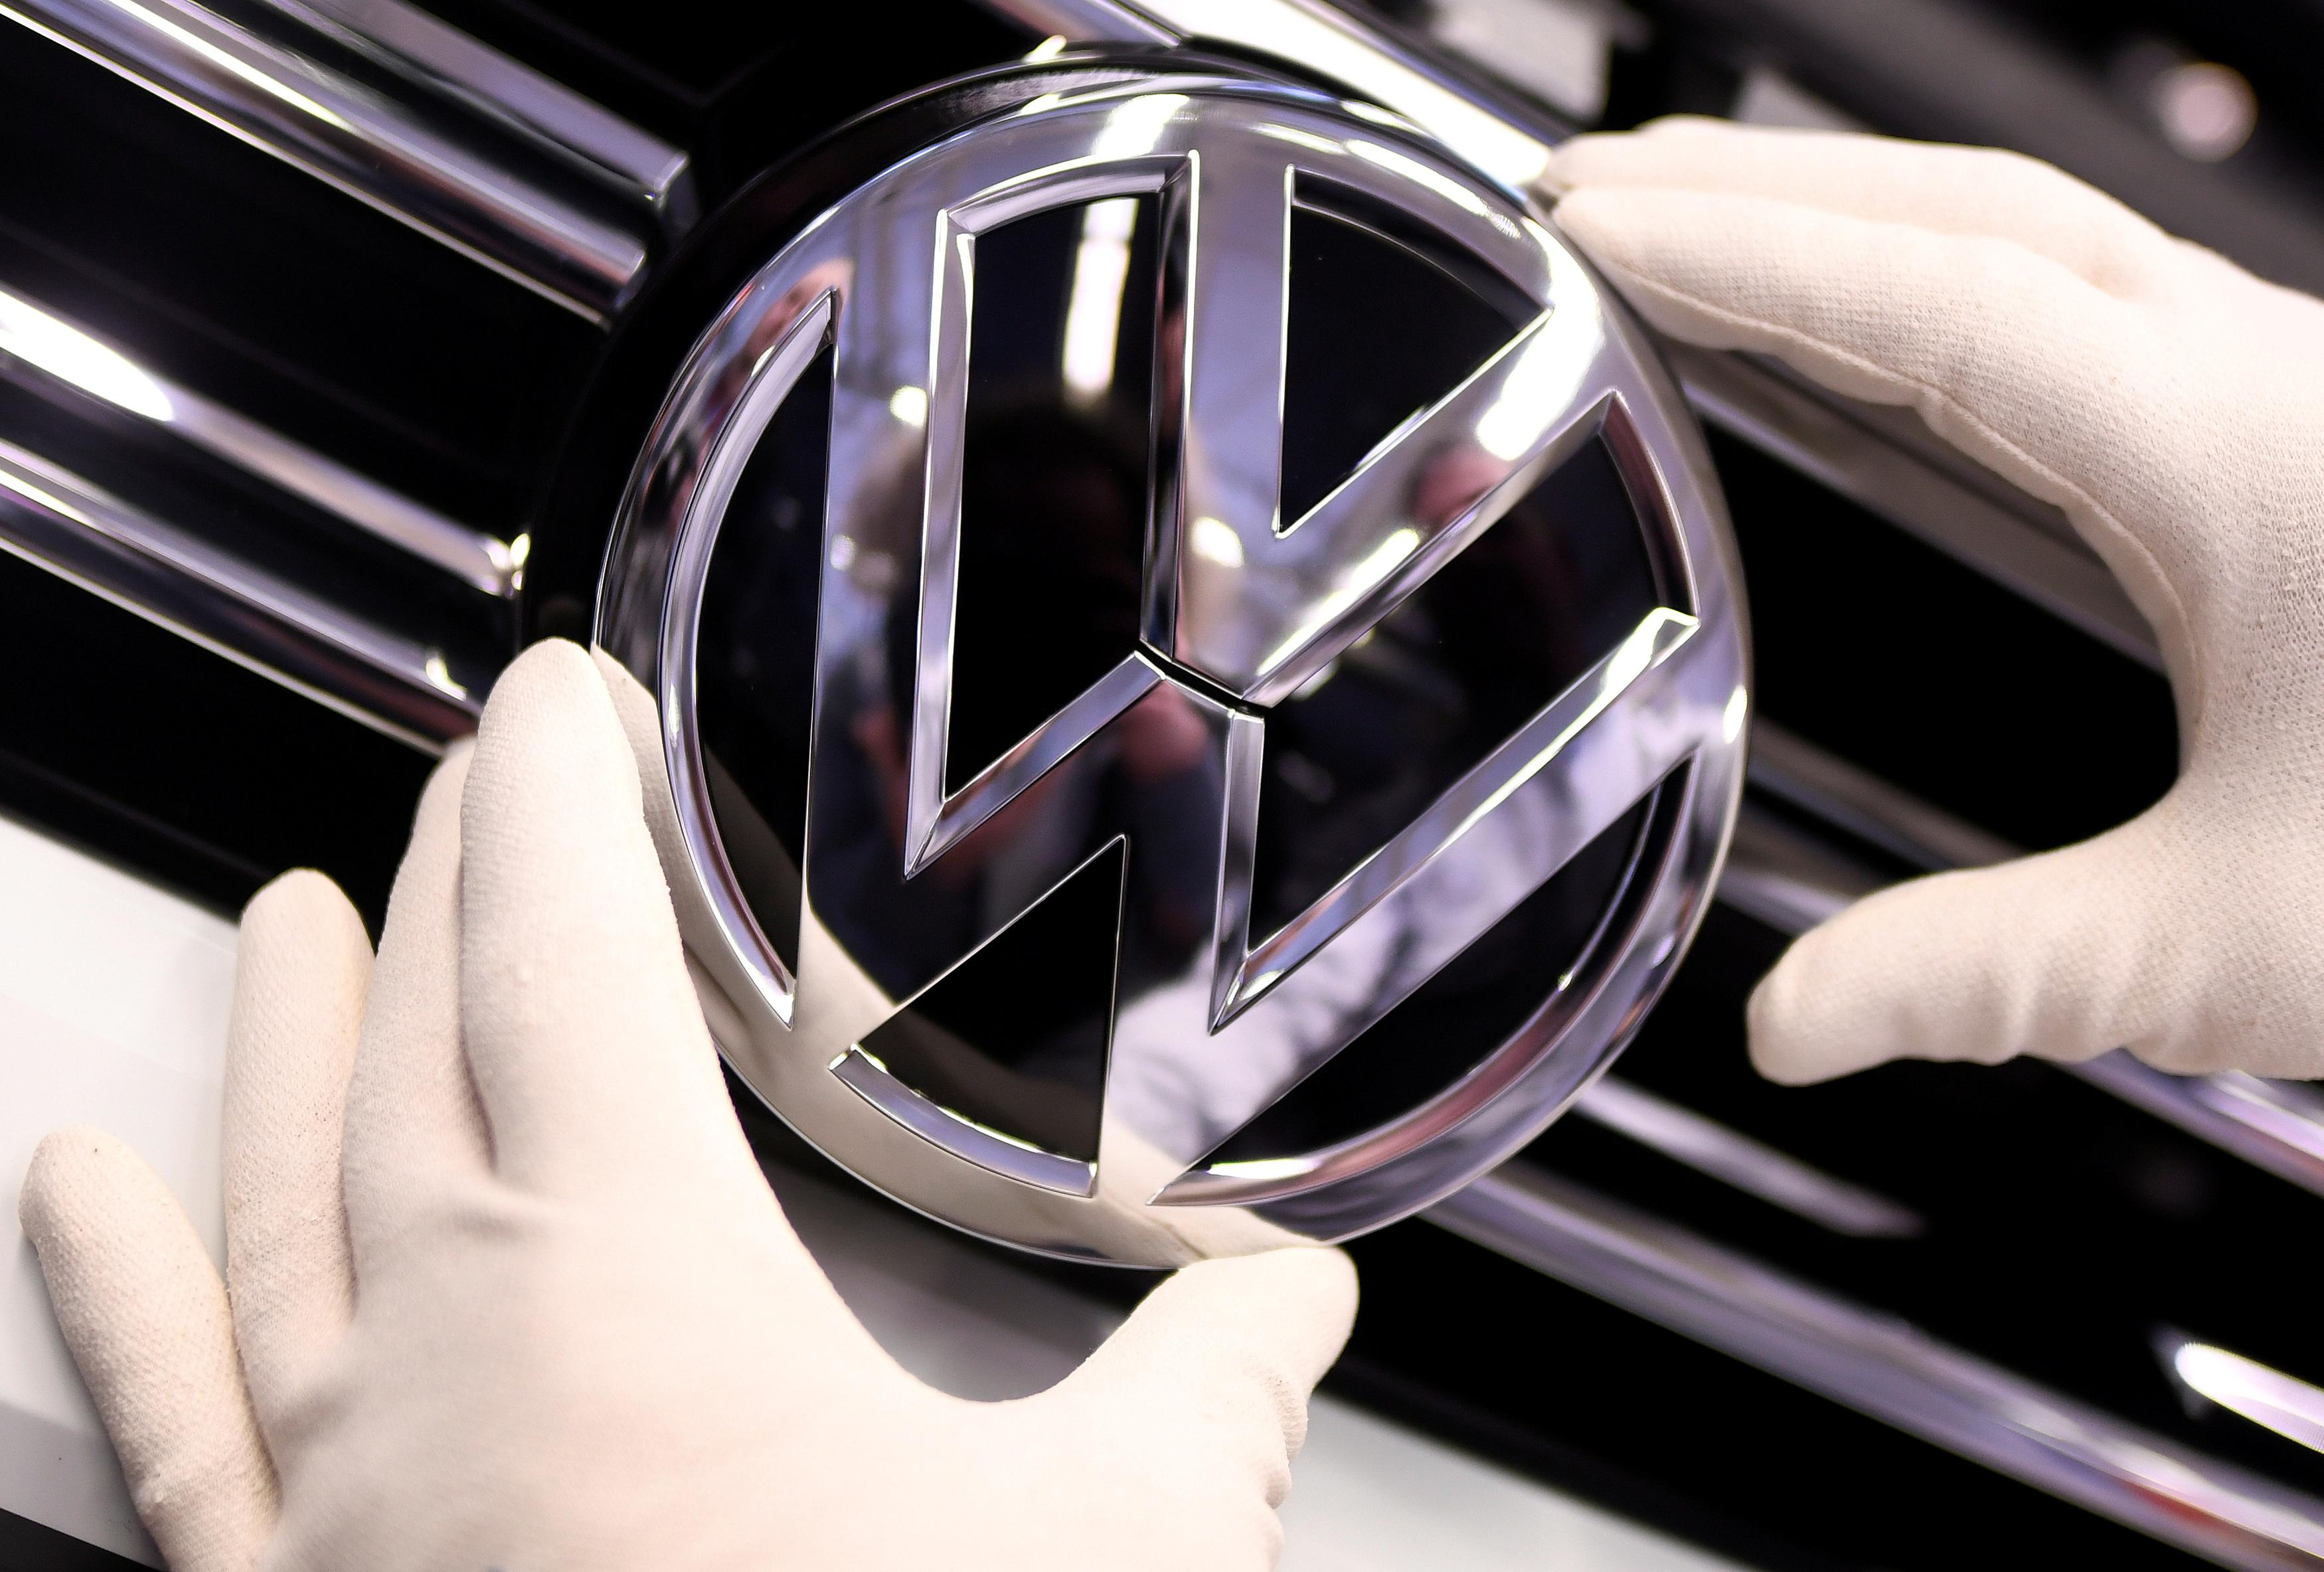 Volkswagen Chattanooga Jobs >> Vw Brand To Cut Up To 7 000 Jobs In New Savings Drive Reuters